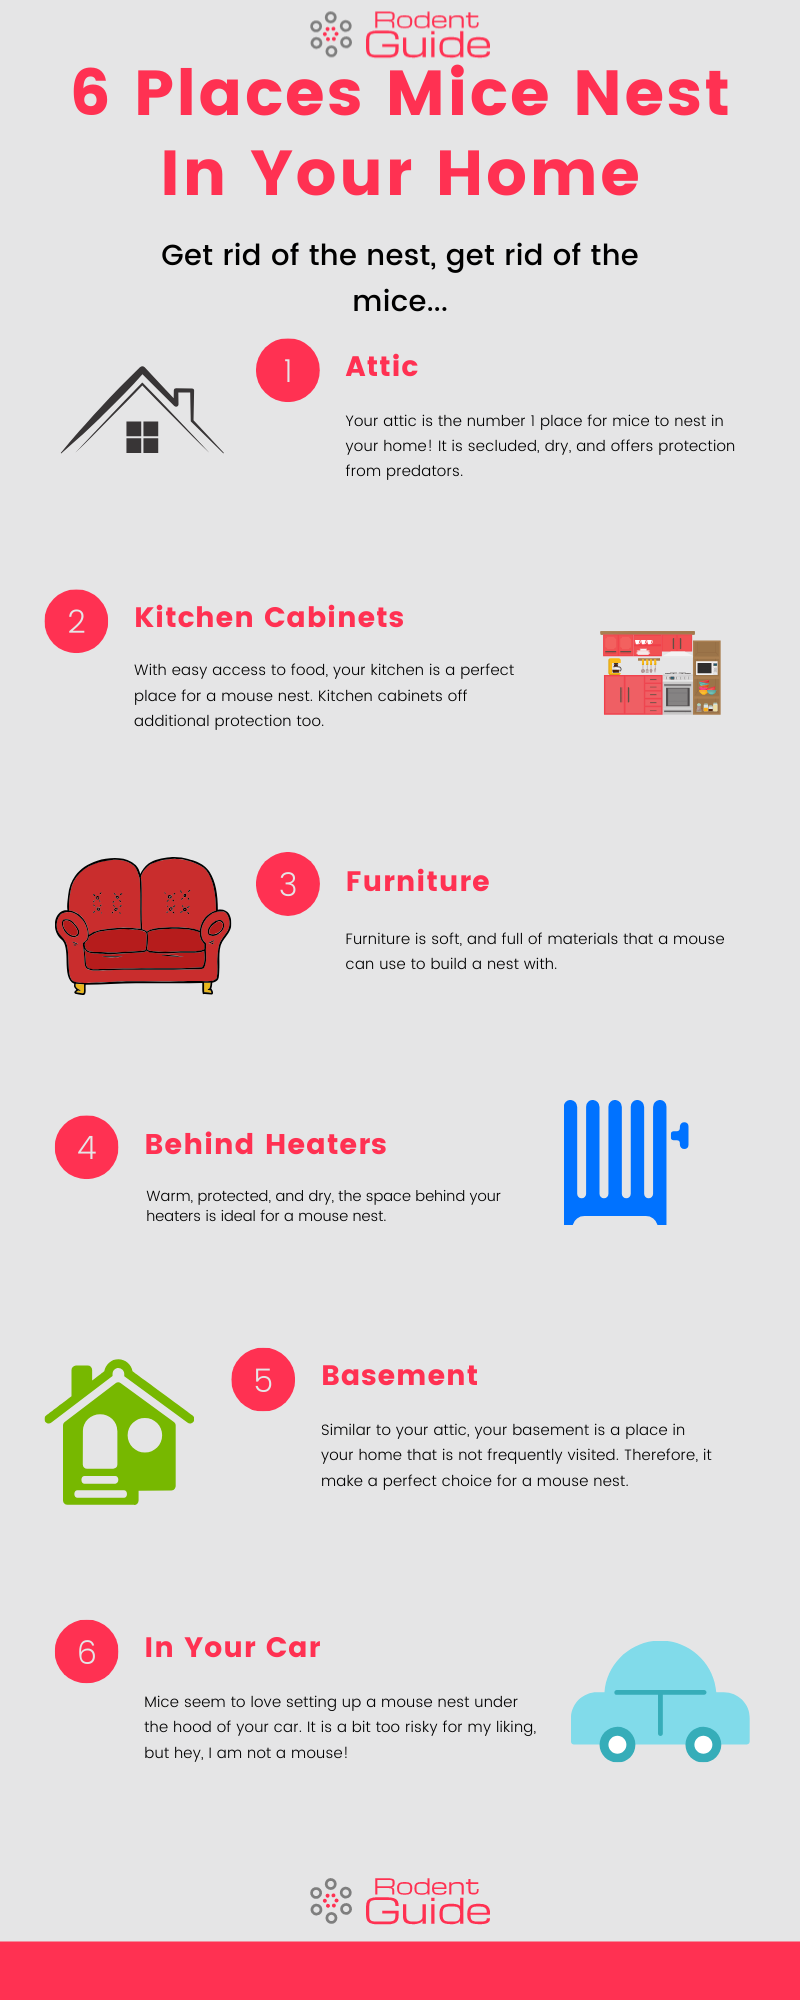 6 places mice nest in your home infogram.